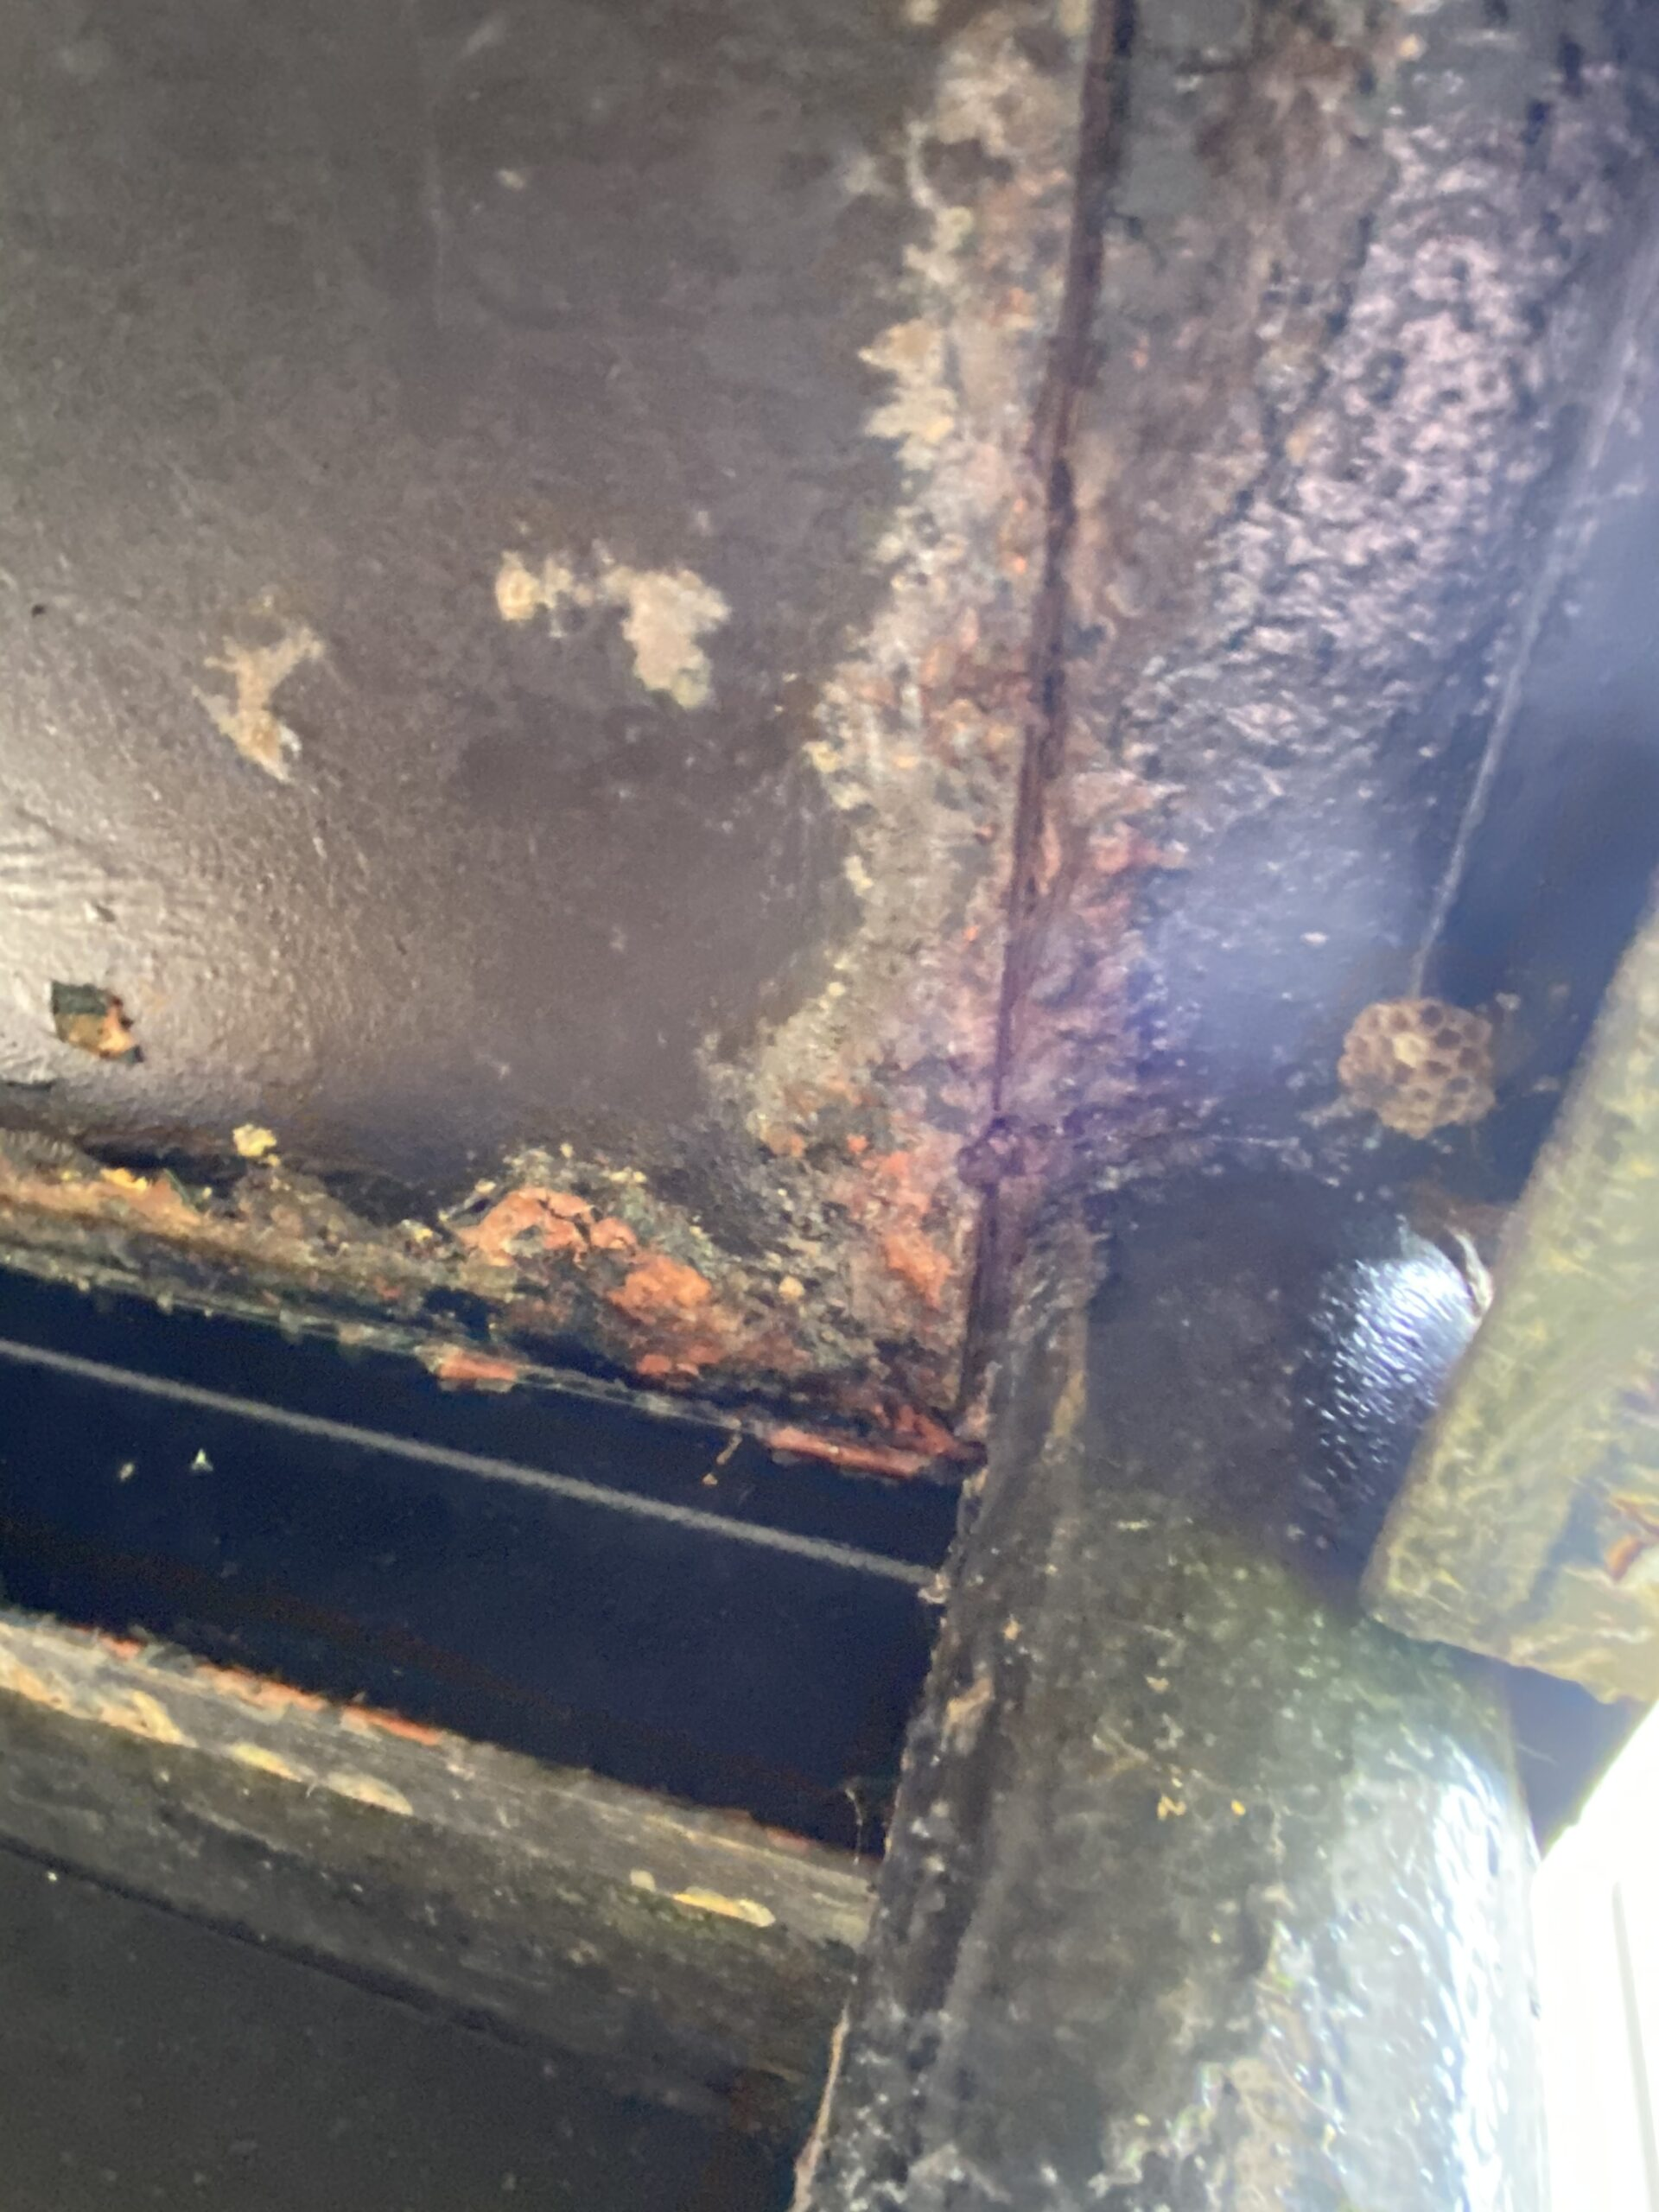 This is a picture of some rust on steel stairwells